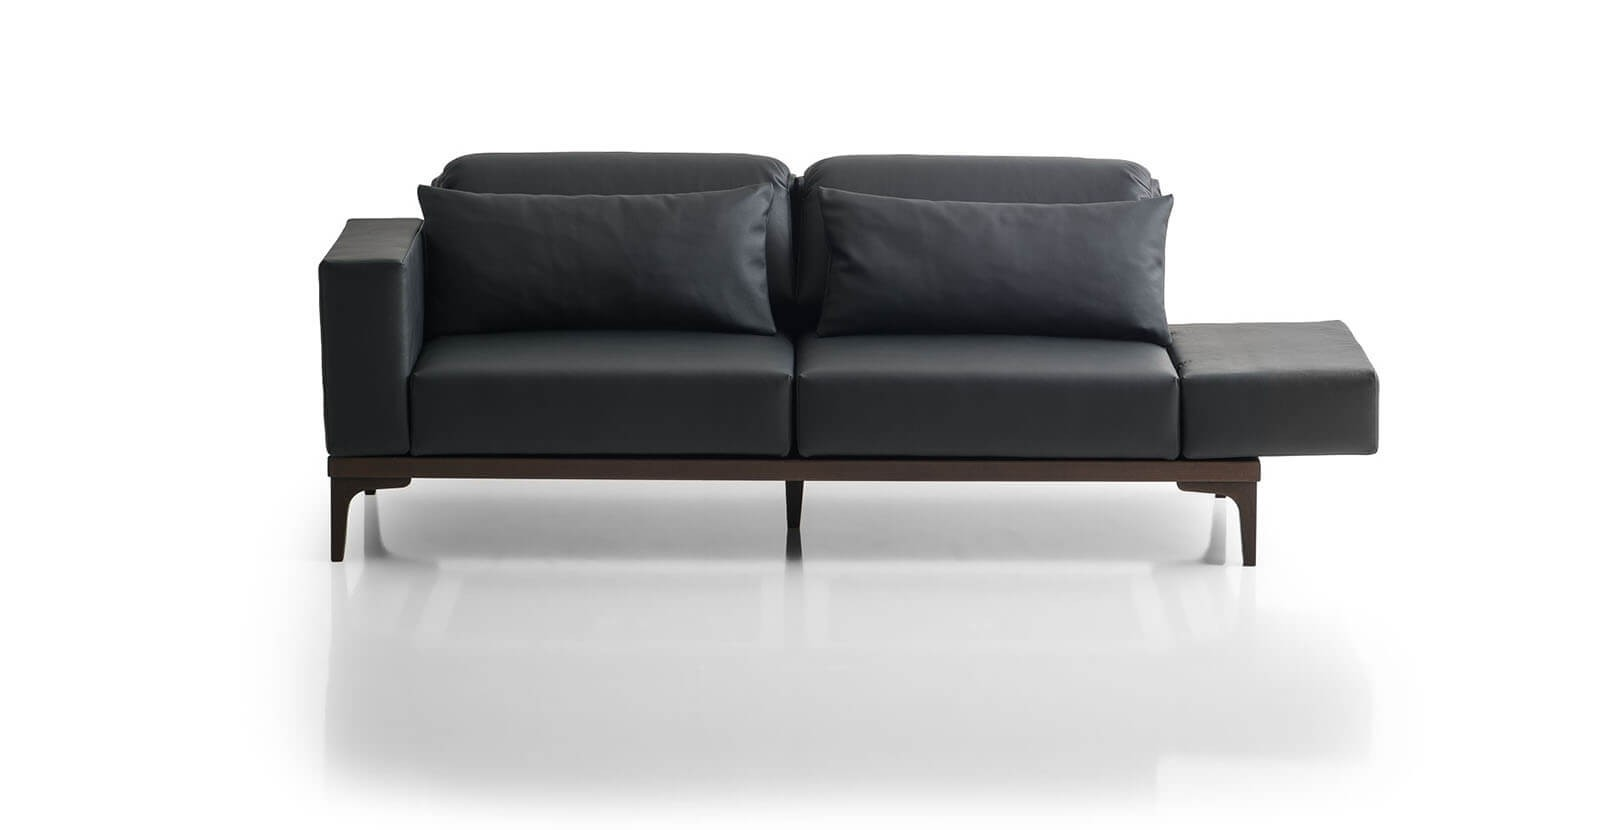 franz fertig mito schlafsofa. Black Bedroom Furniture Sets. Home Design Ideas